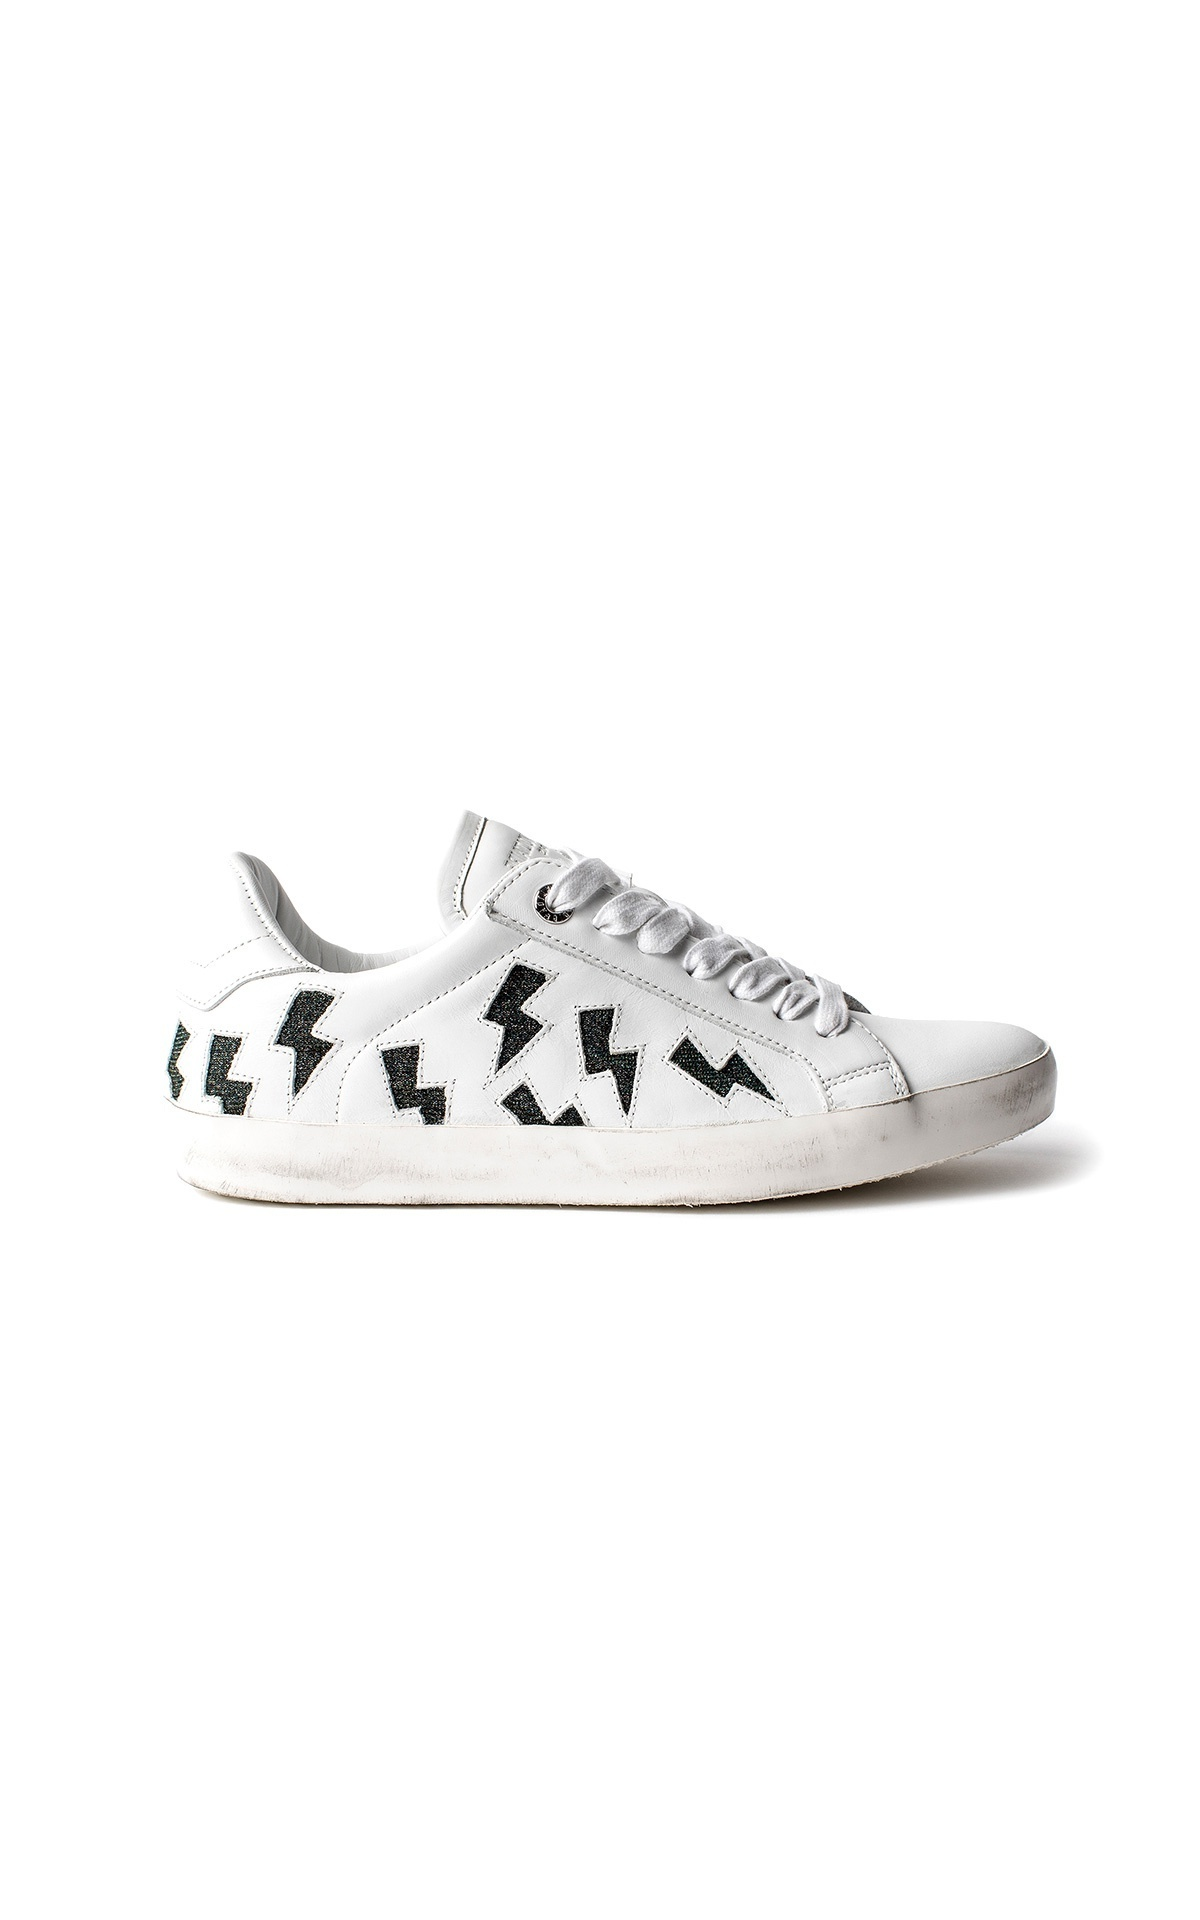 Zadig & Voltaire Baskets femme Flash Lurex blanches  La Vallée Village